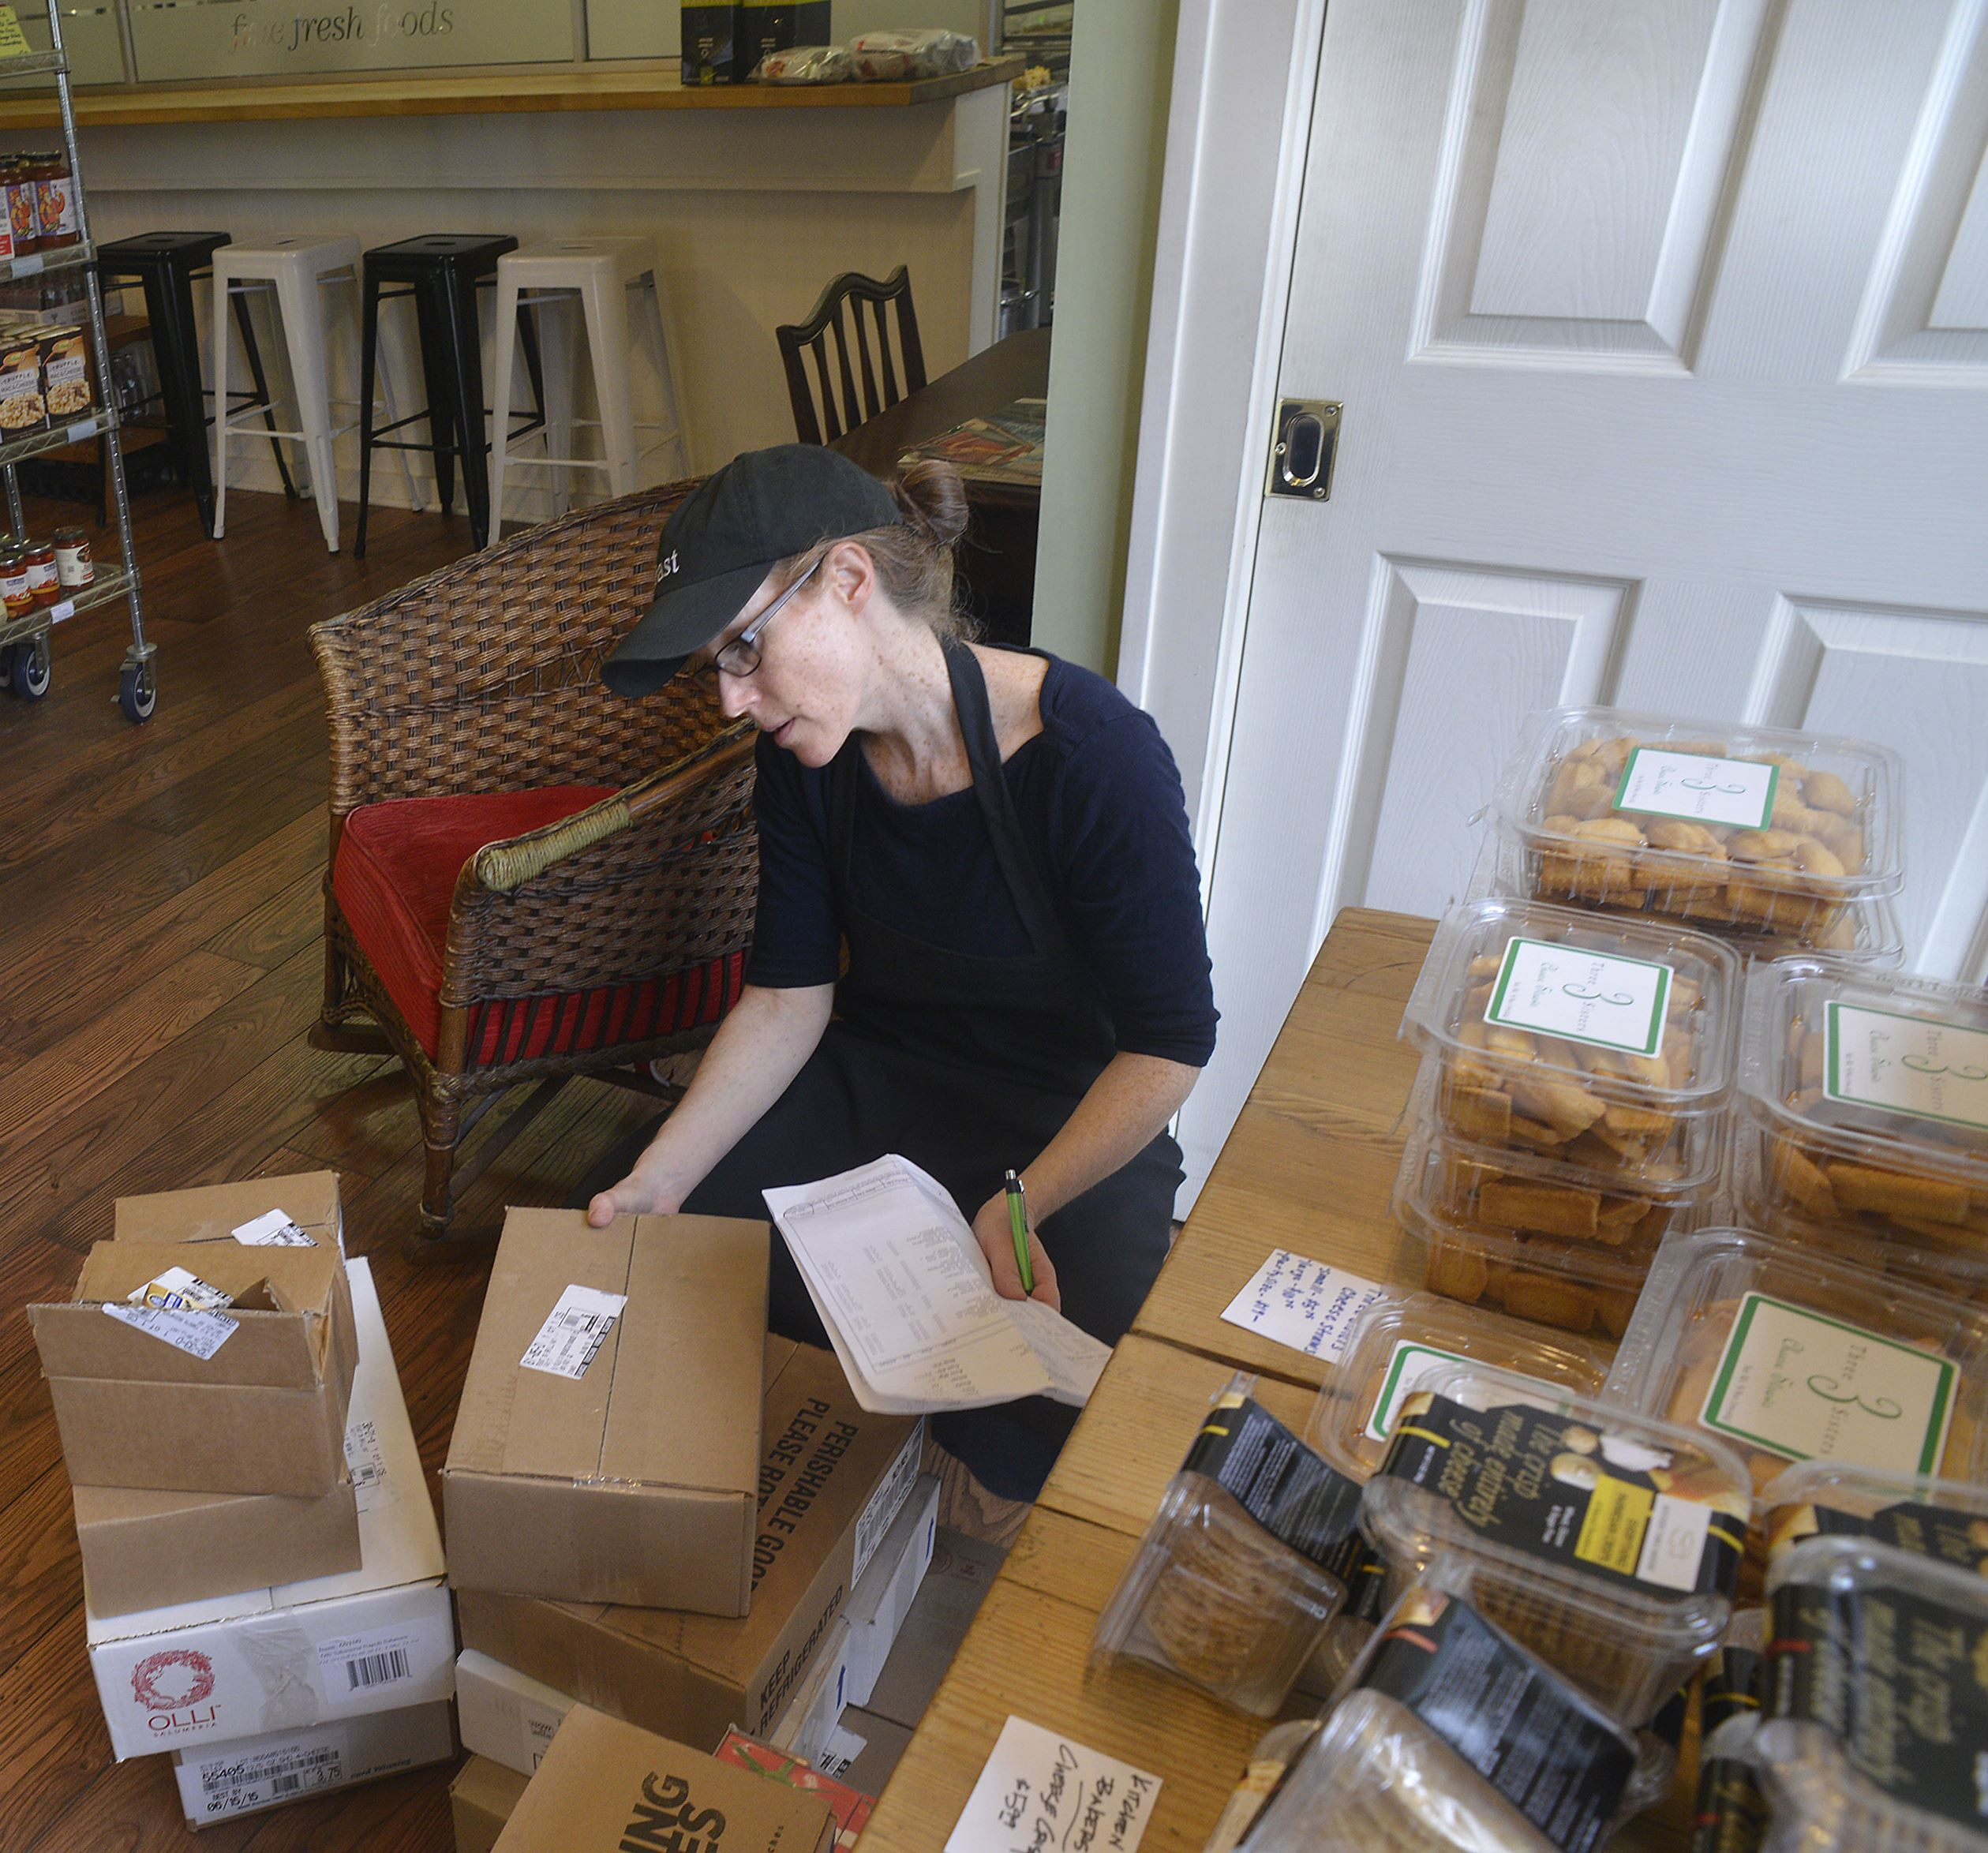 20150409lrbrilliantfood06-4 Patty Danforth , the proprietor of Feast on Brilliant in Aspinwall, checks off each of the cheeses she received in a delivery.